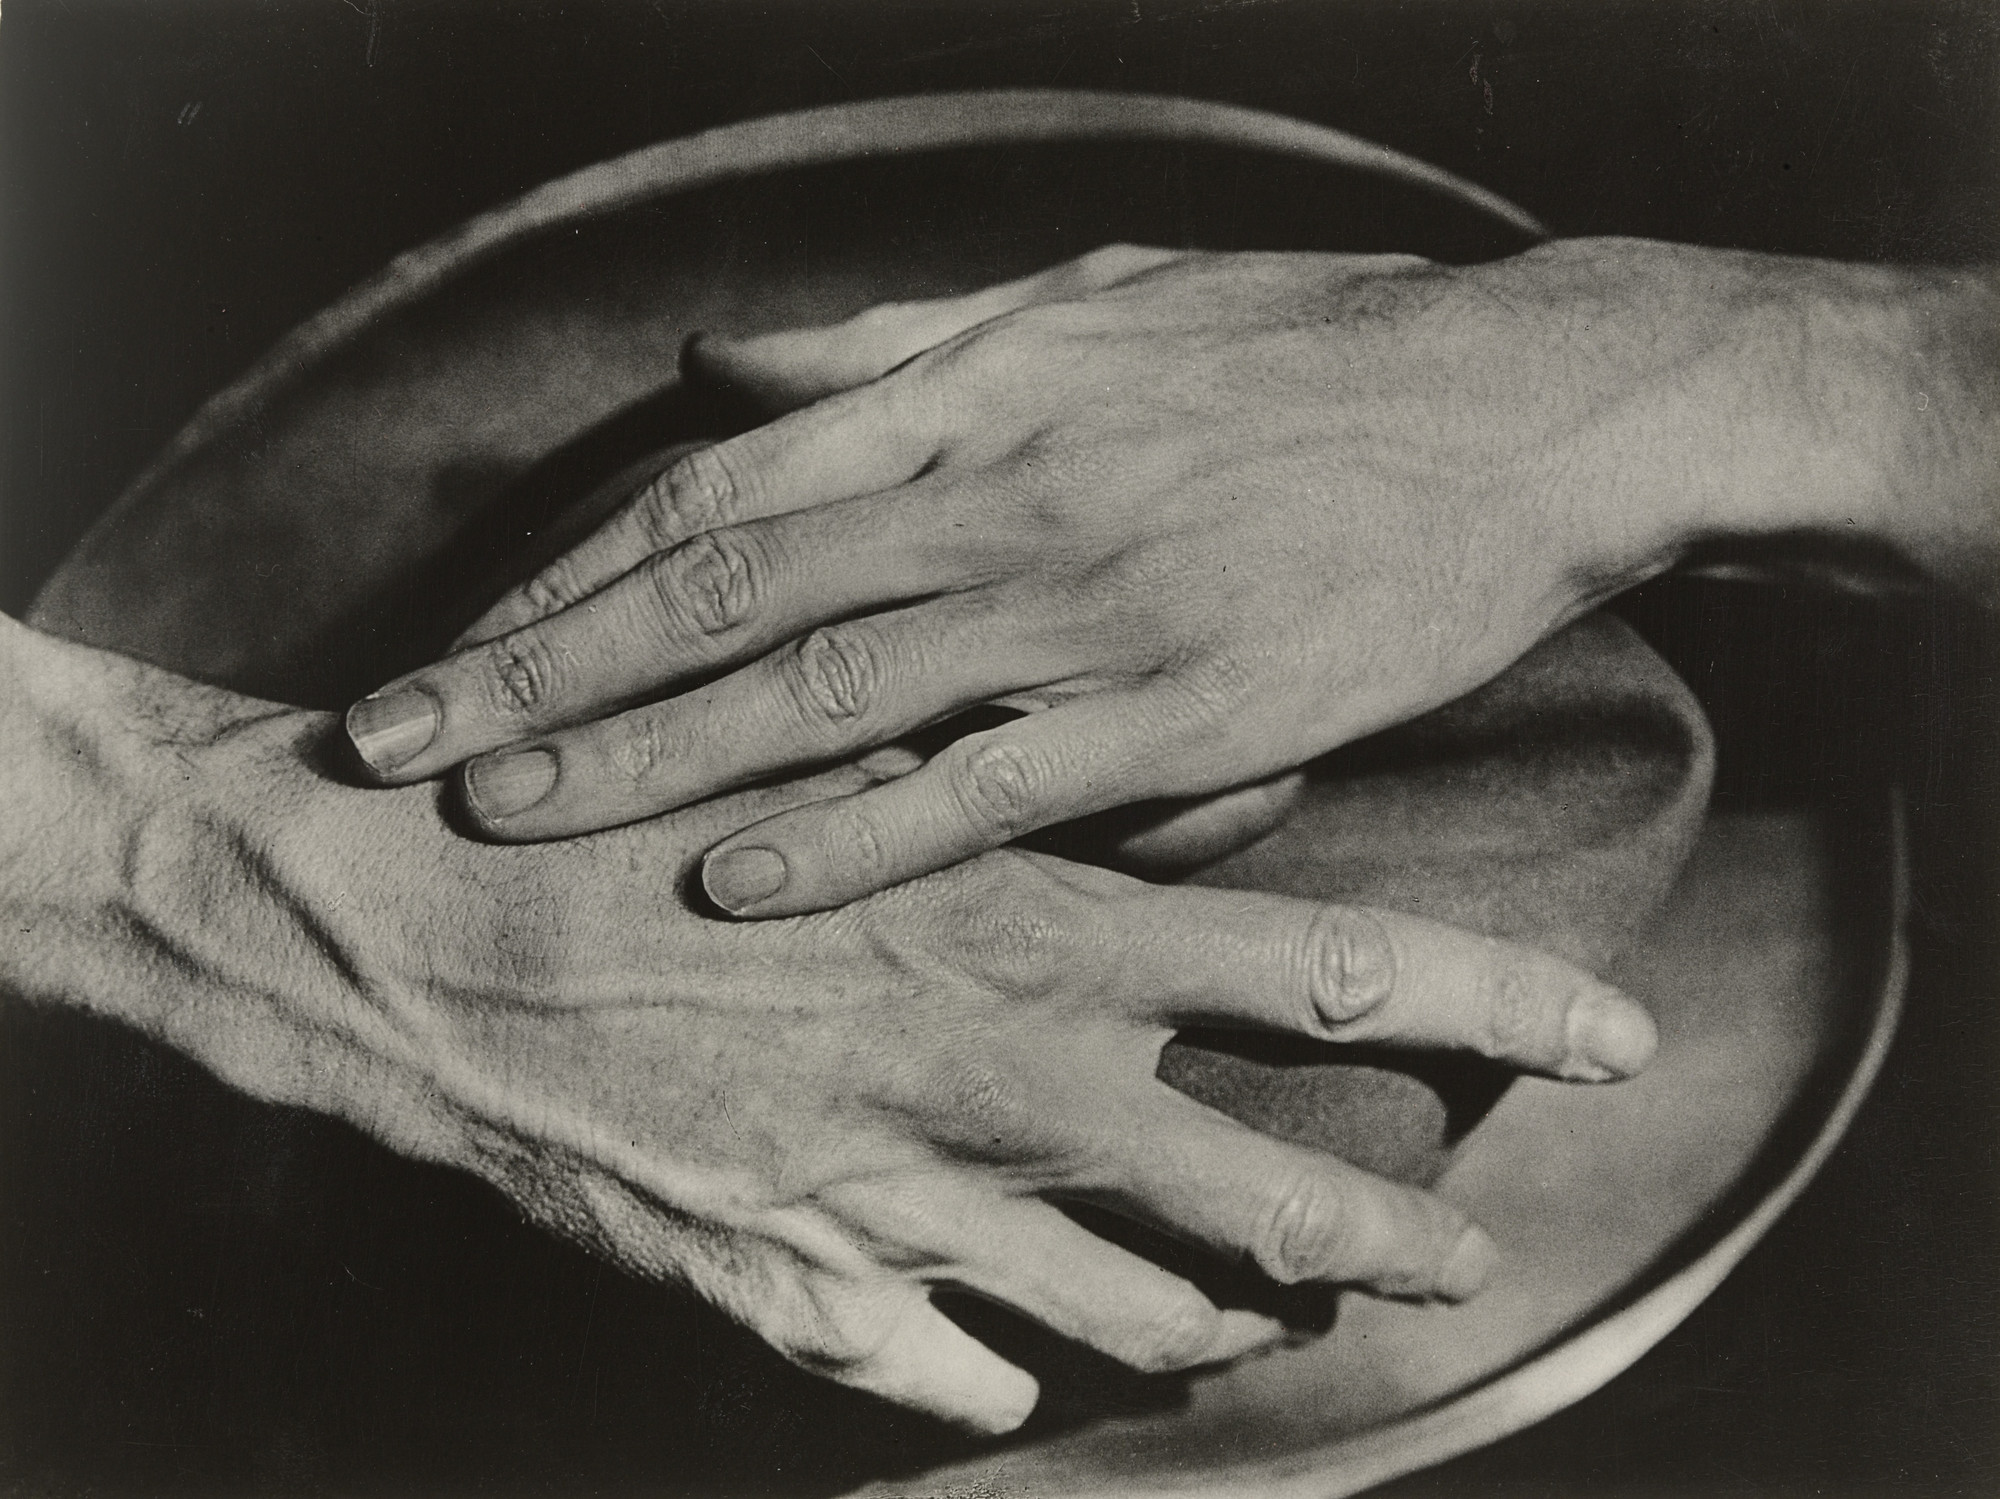 Berenice Abbott. Hands of Jean Cocteau. 1927